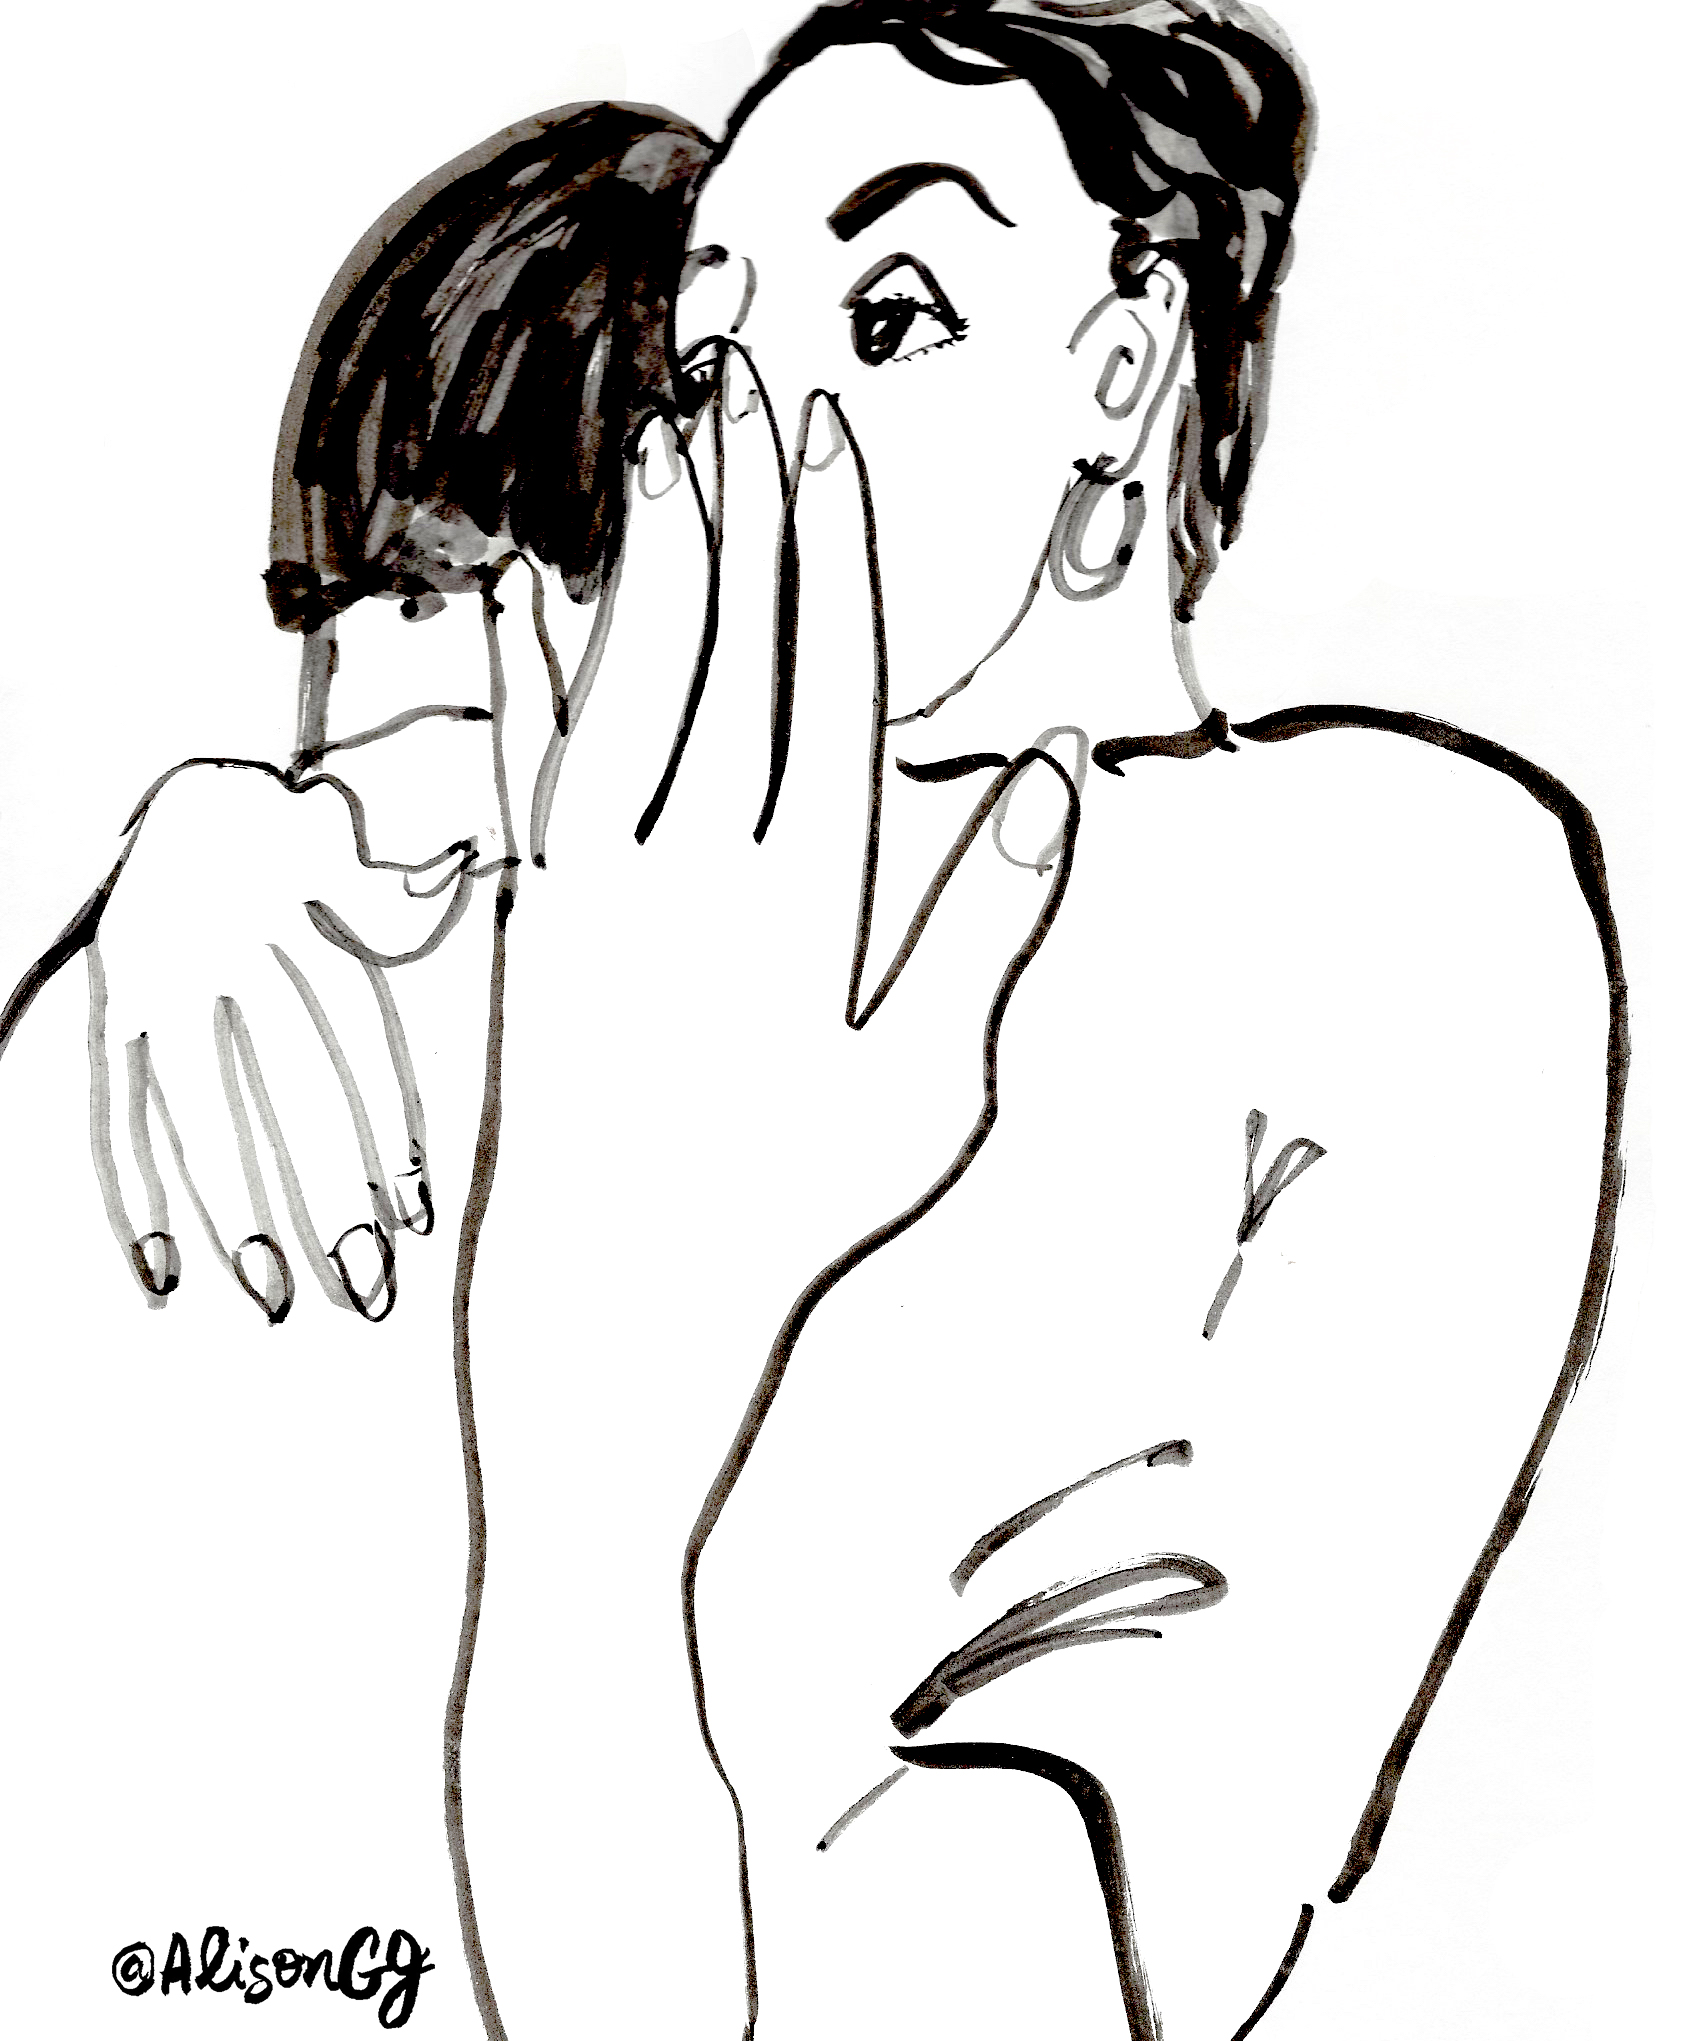 Shock, illustration by Alison Garwood-Jones